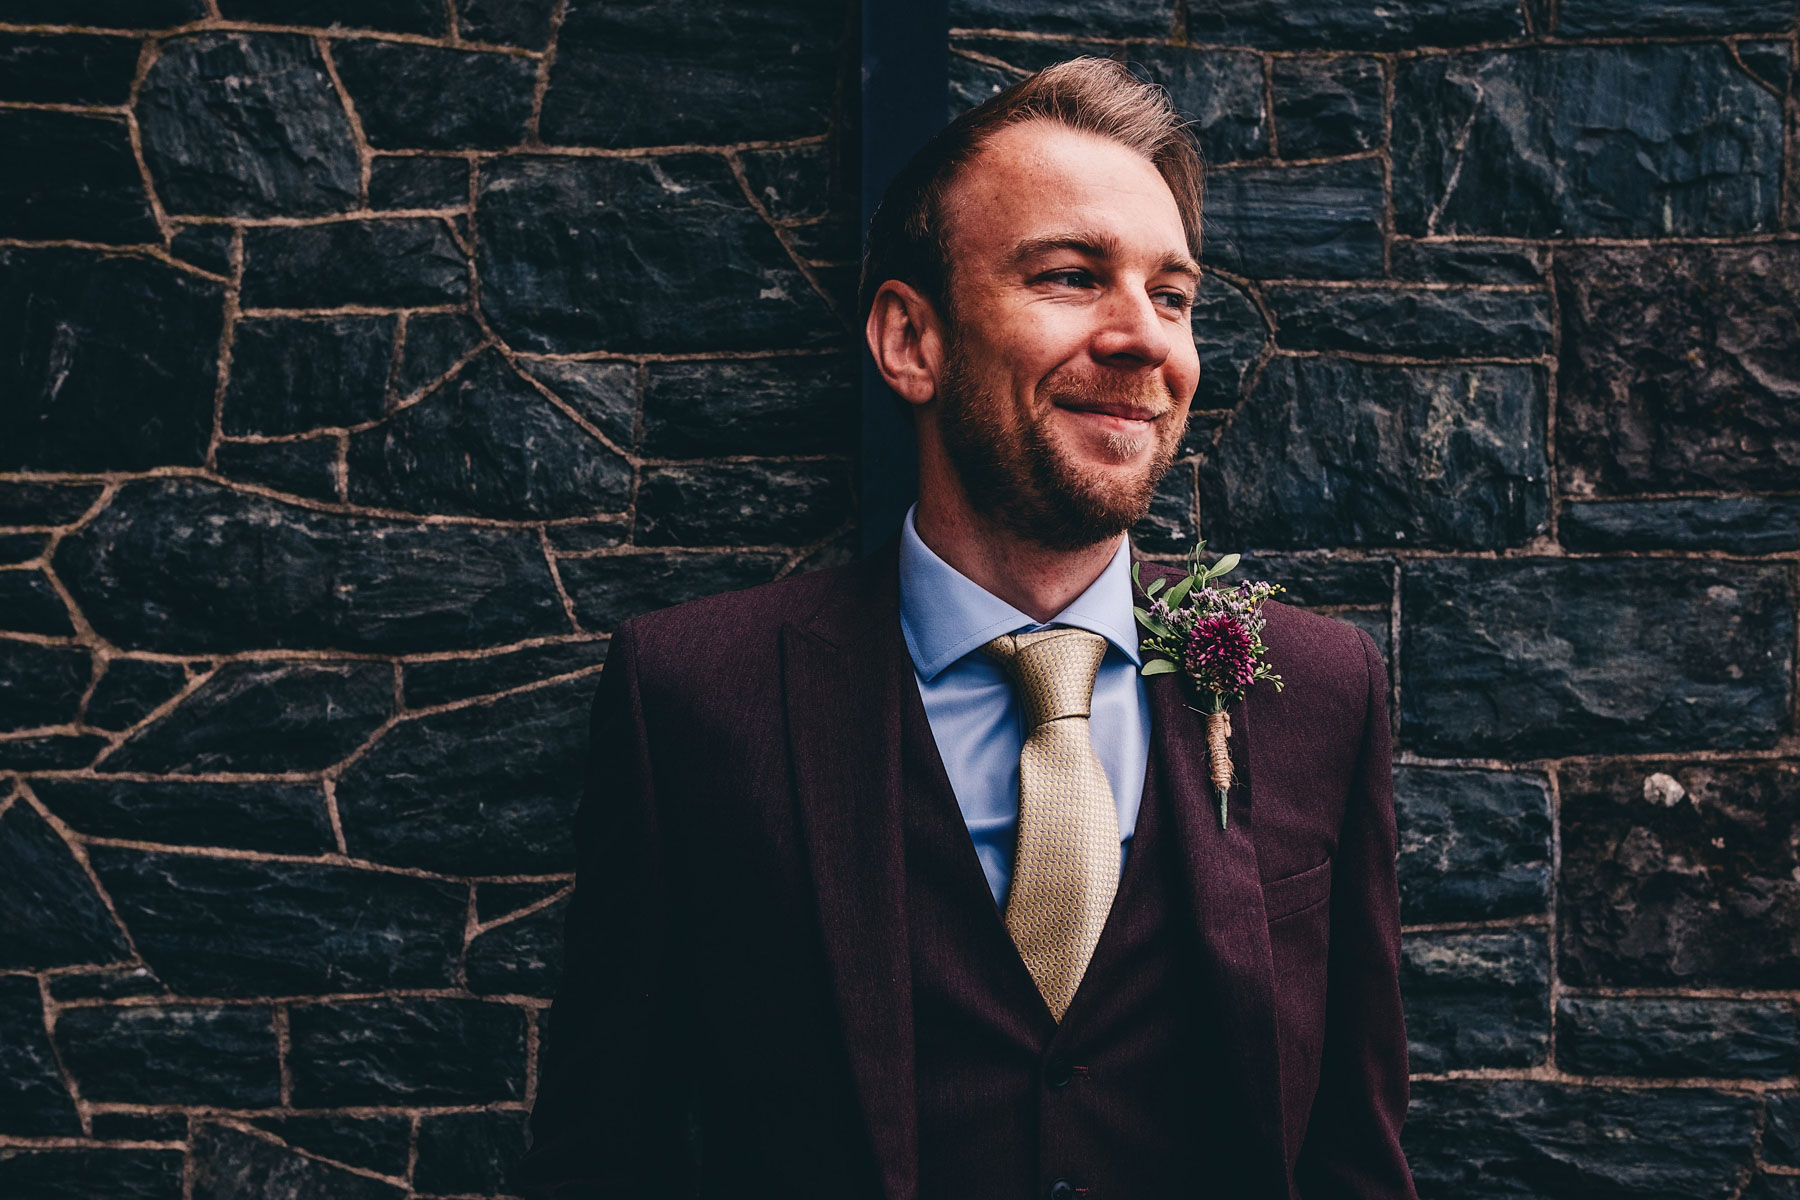 Groomsman poses for photo against dark brick